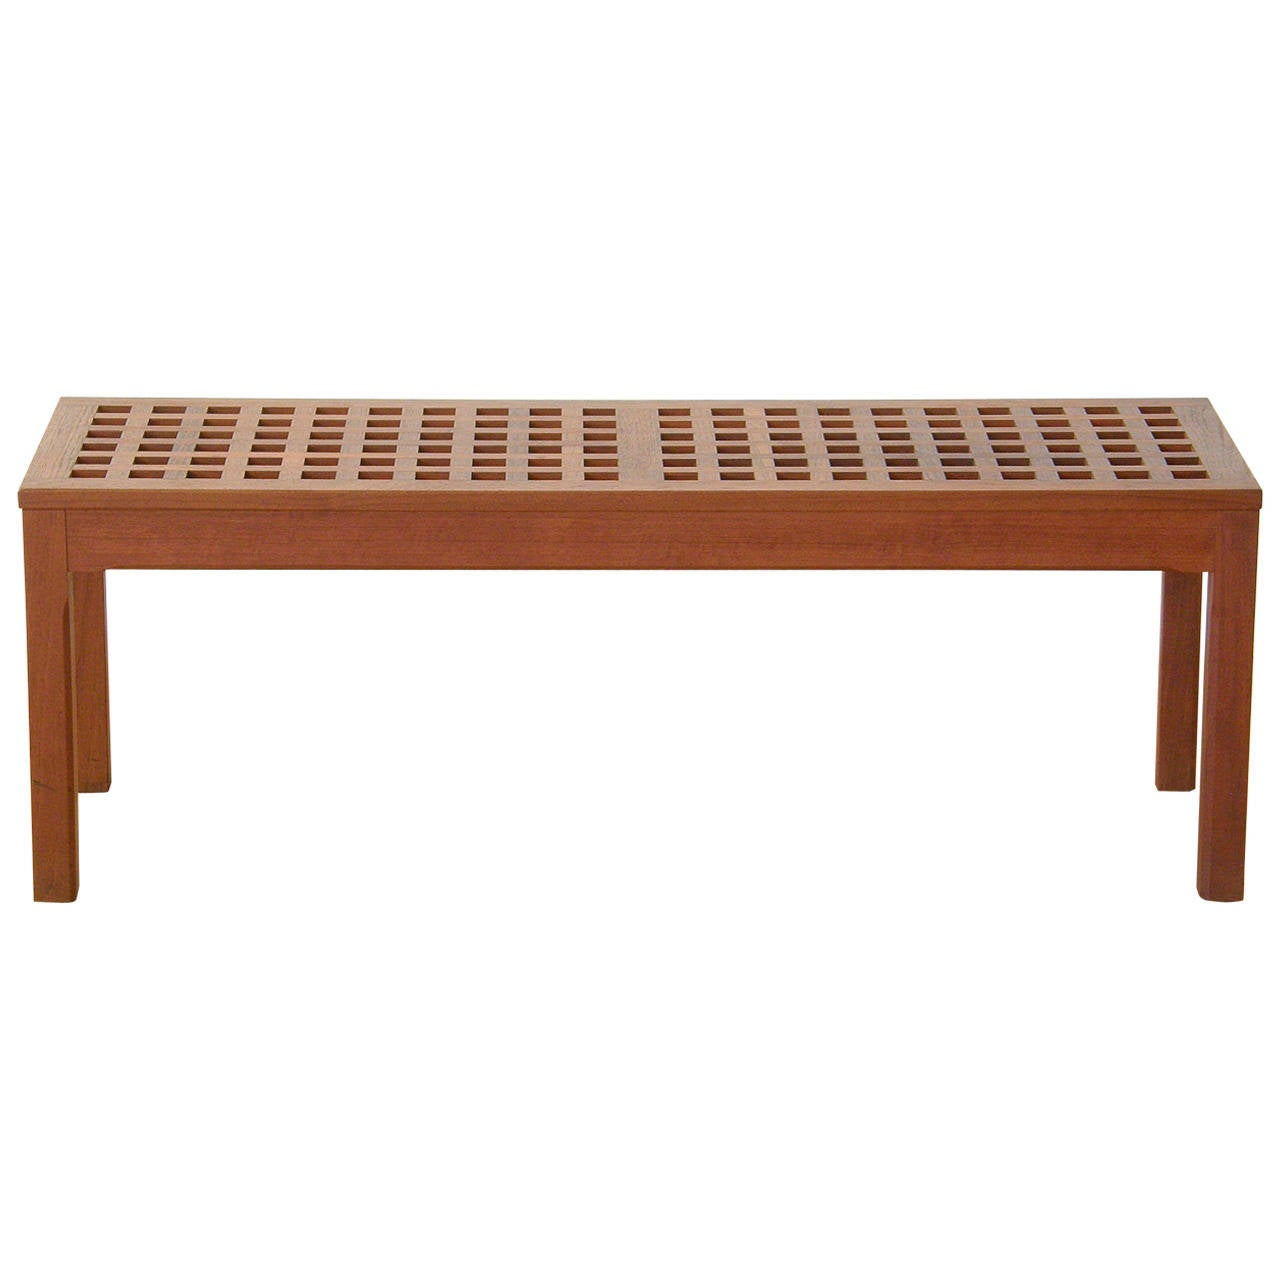 Harvey Probber Marble Top Rectangular Coffee Table W: Rectangular Teak, Grid-Top Table For Sale At 1stdibs